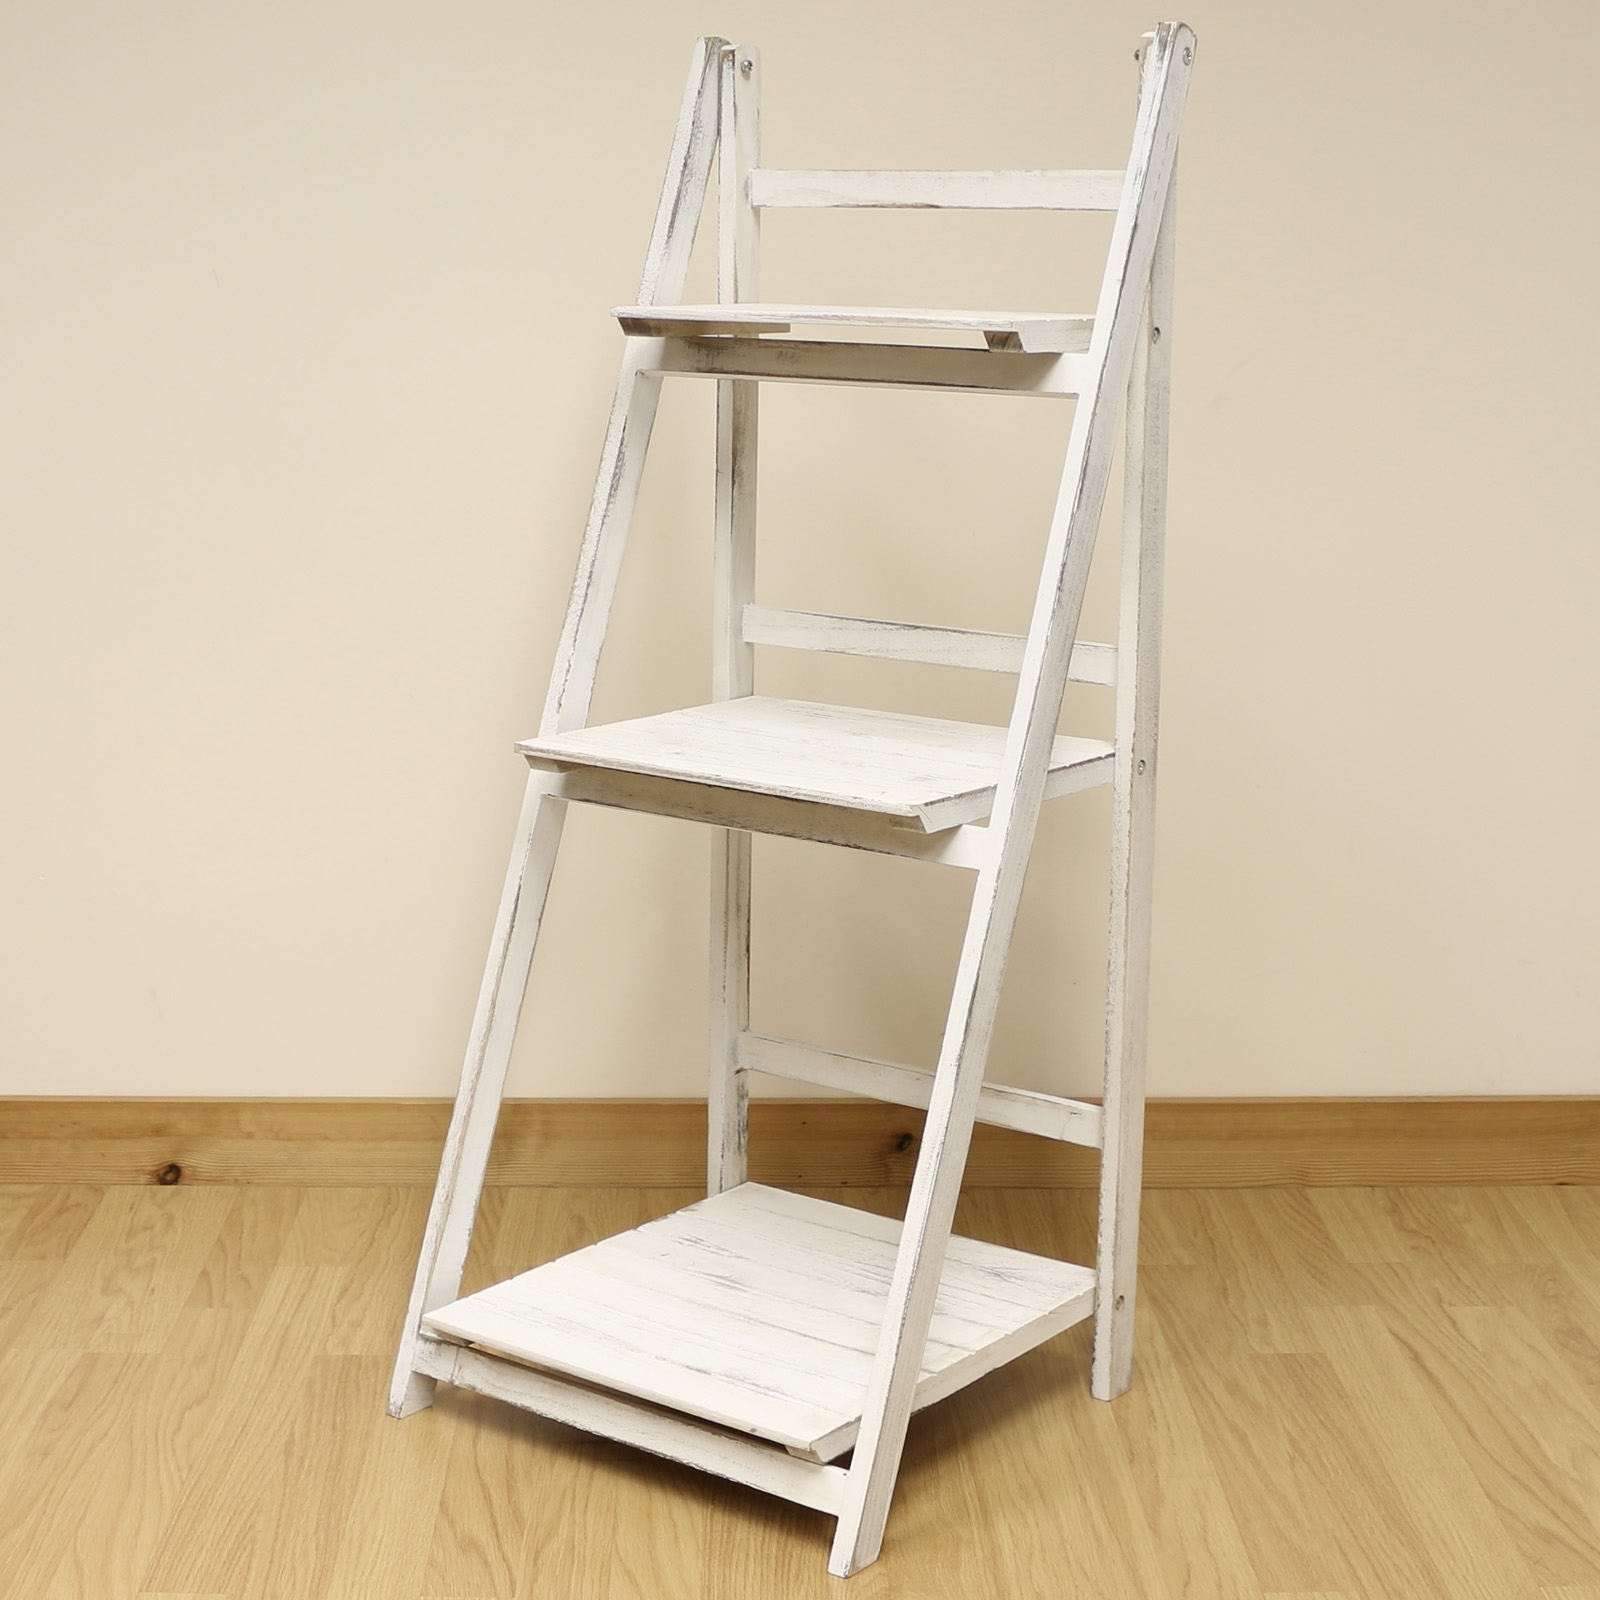 Best And Newest Free Standing Shelving Units Wood Inside Simple White Wooden Ladder Shelf (View 1 of 15)